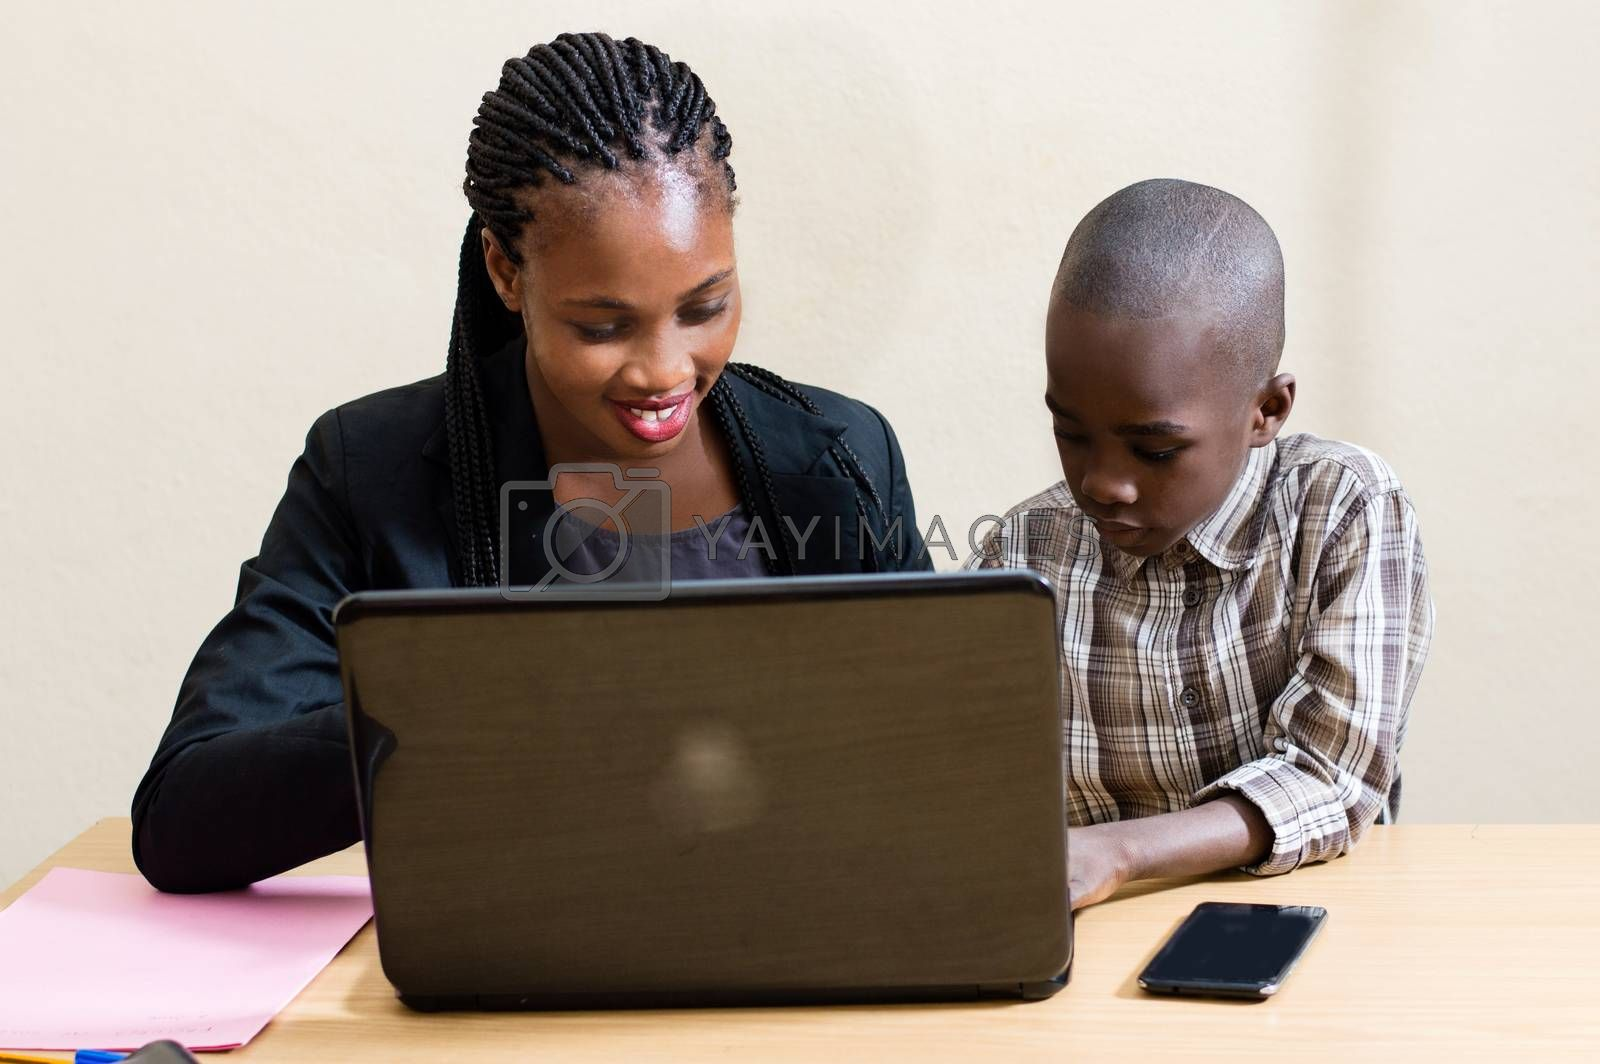 Smiling young woman learns computer skills from child